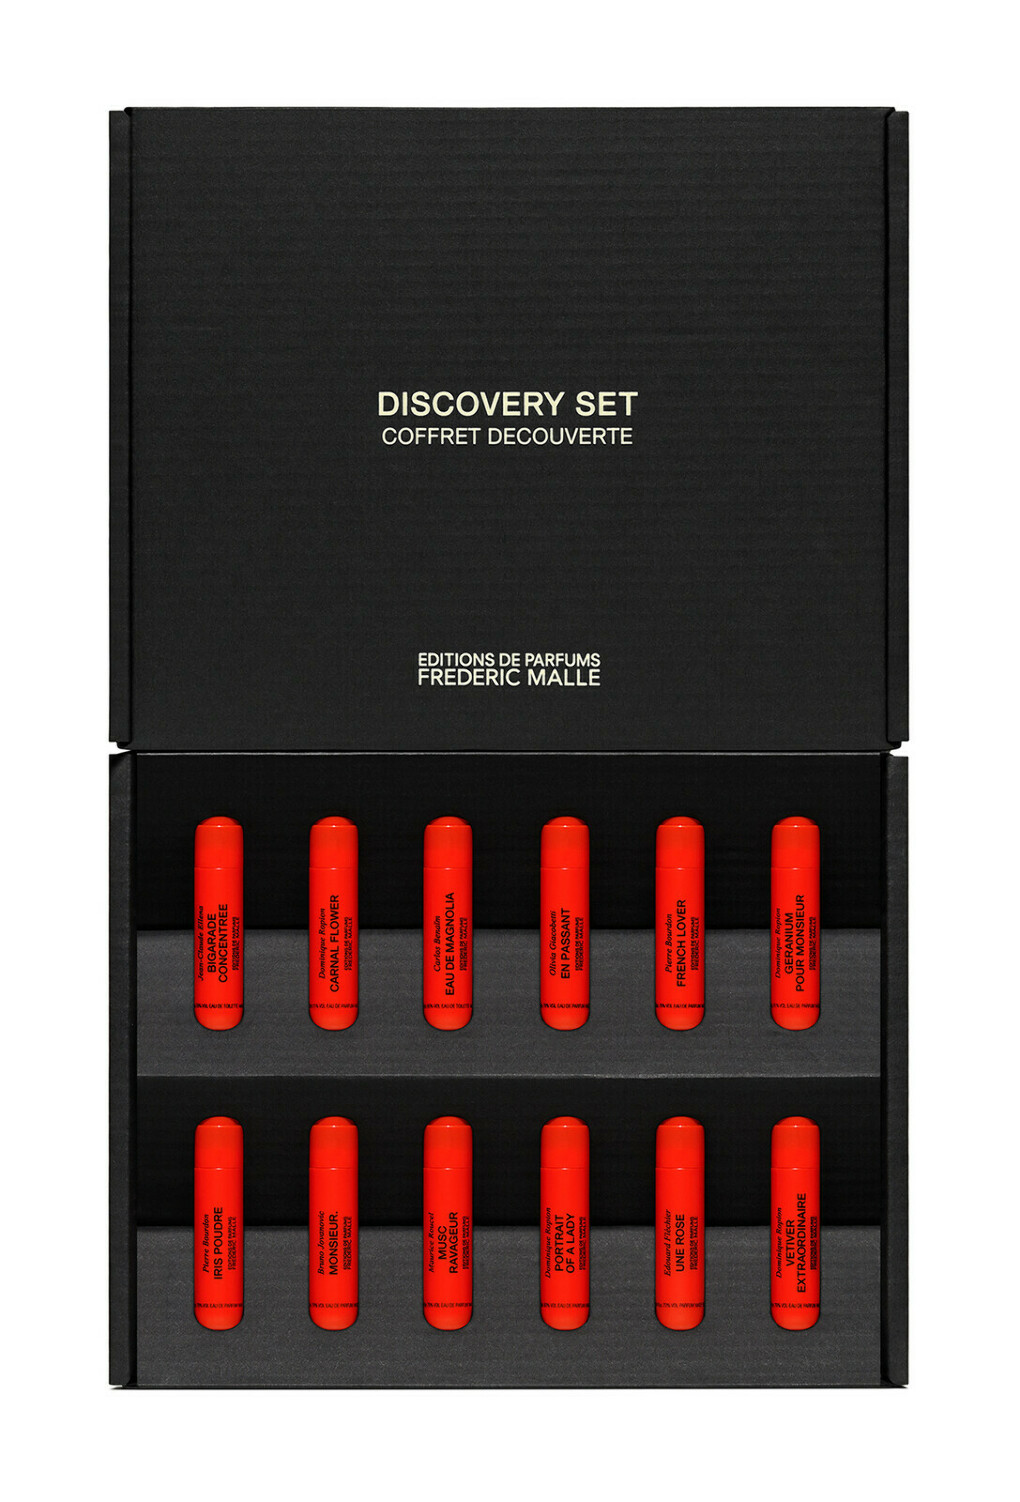 https://shop.rivegauche.ru/product/frederic-malle-discovery-set